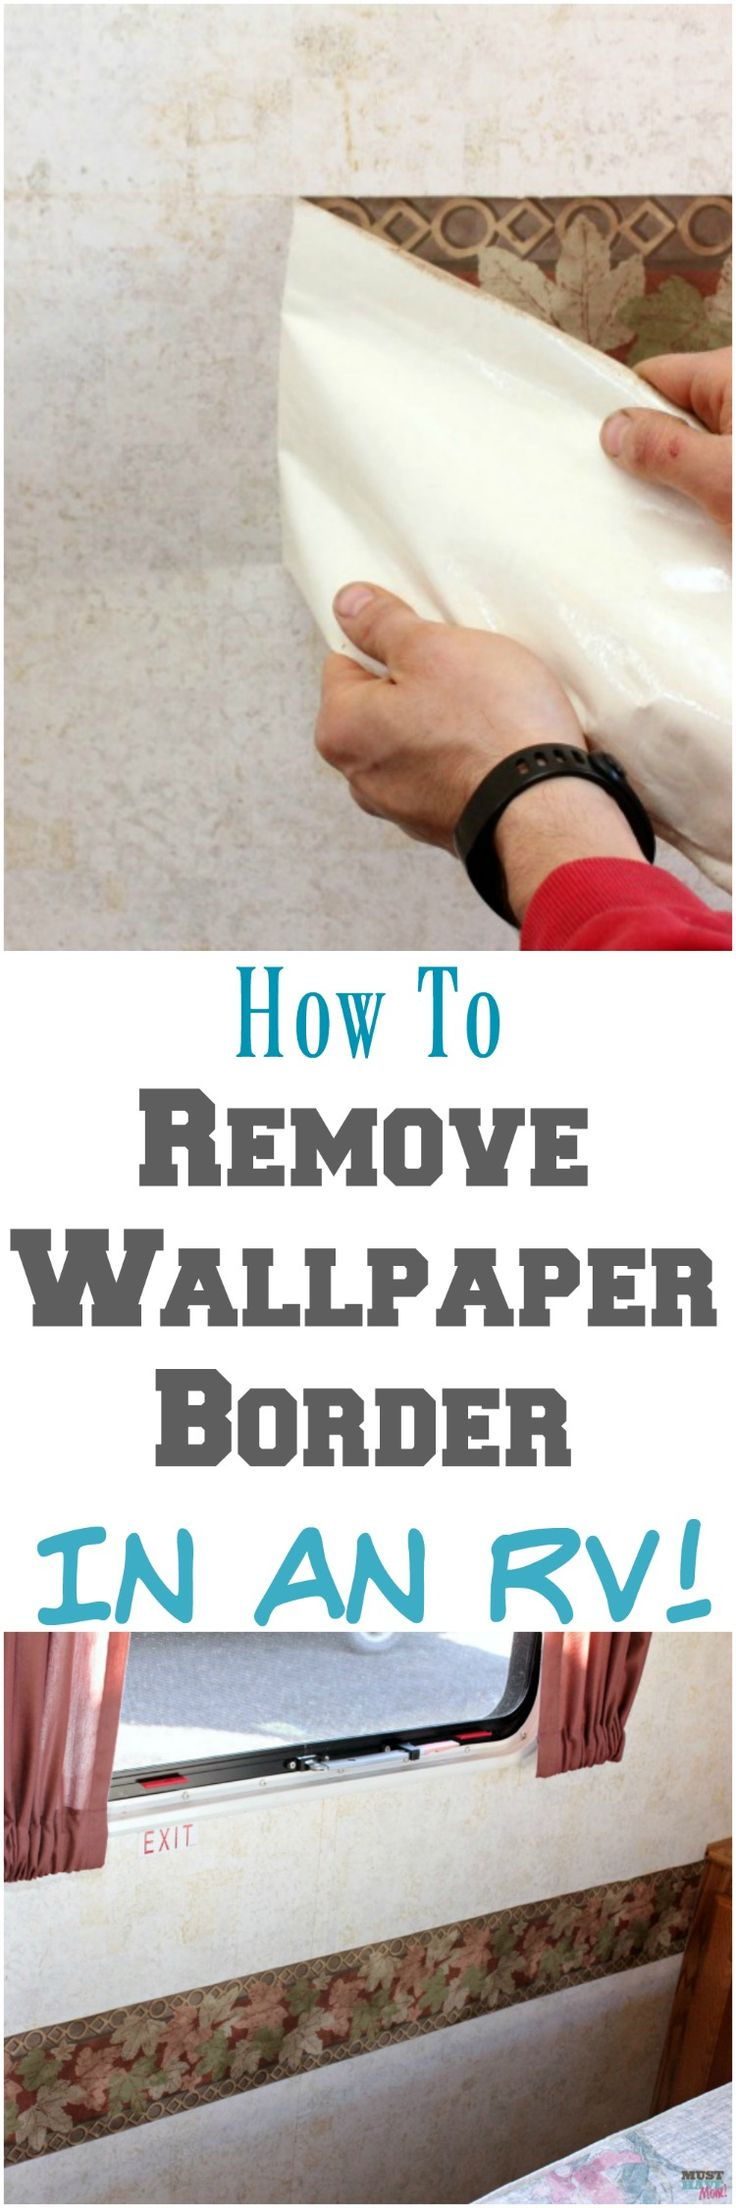 How to remove wallpaper paste from sheetrock - How To Remove Wallpaper Border In An Rv